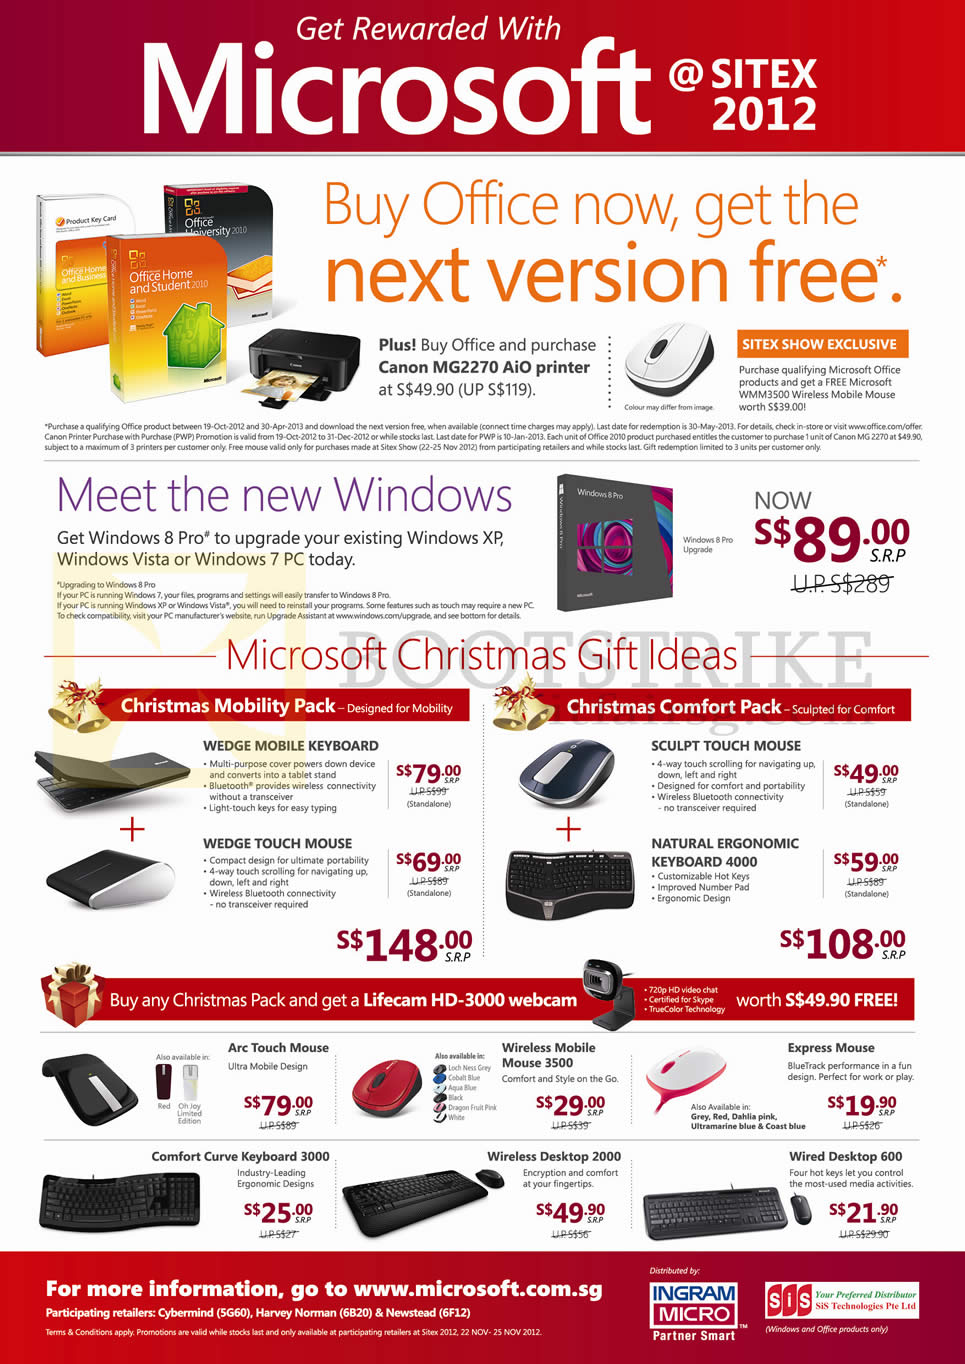 SITEX 2012 price list image brochure of Microsoft Office 2010 Home Student Business, Windows 8, Wedge Keyboard Mouse, Sculpt, Natural Ergonomic 4000, Arc Touch, Comfort Curve